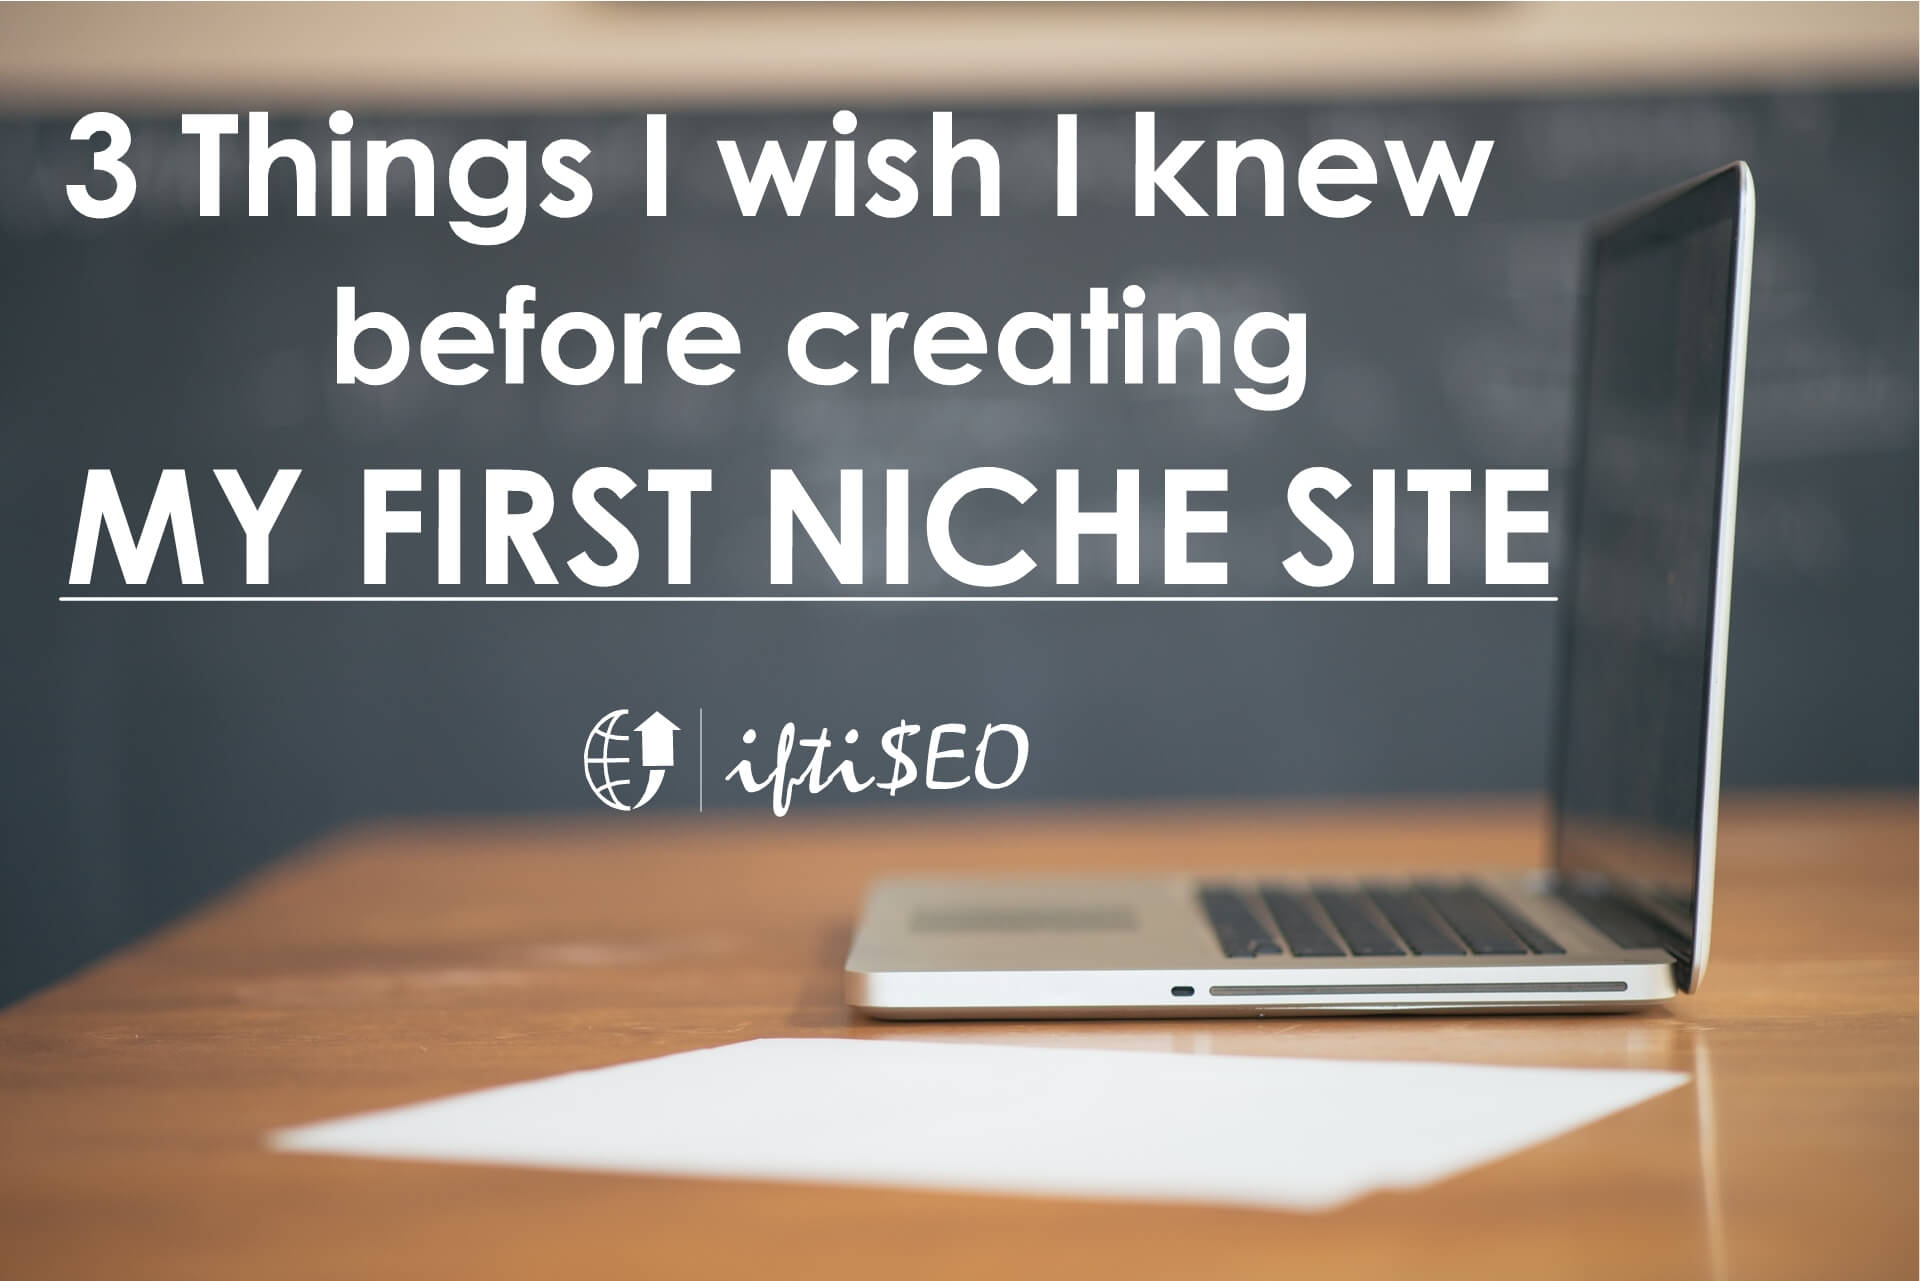 3 Things I wish I knew before Creating My First Niche Site